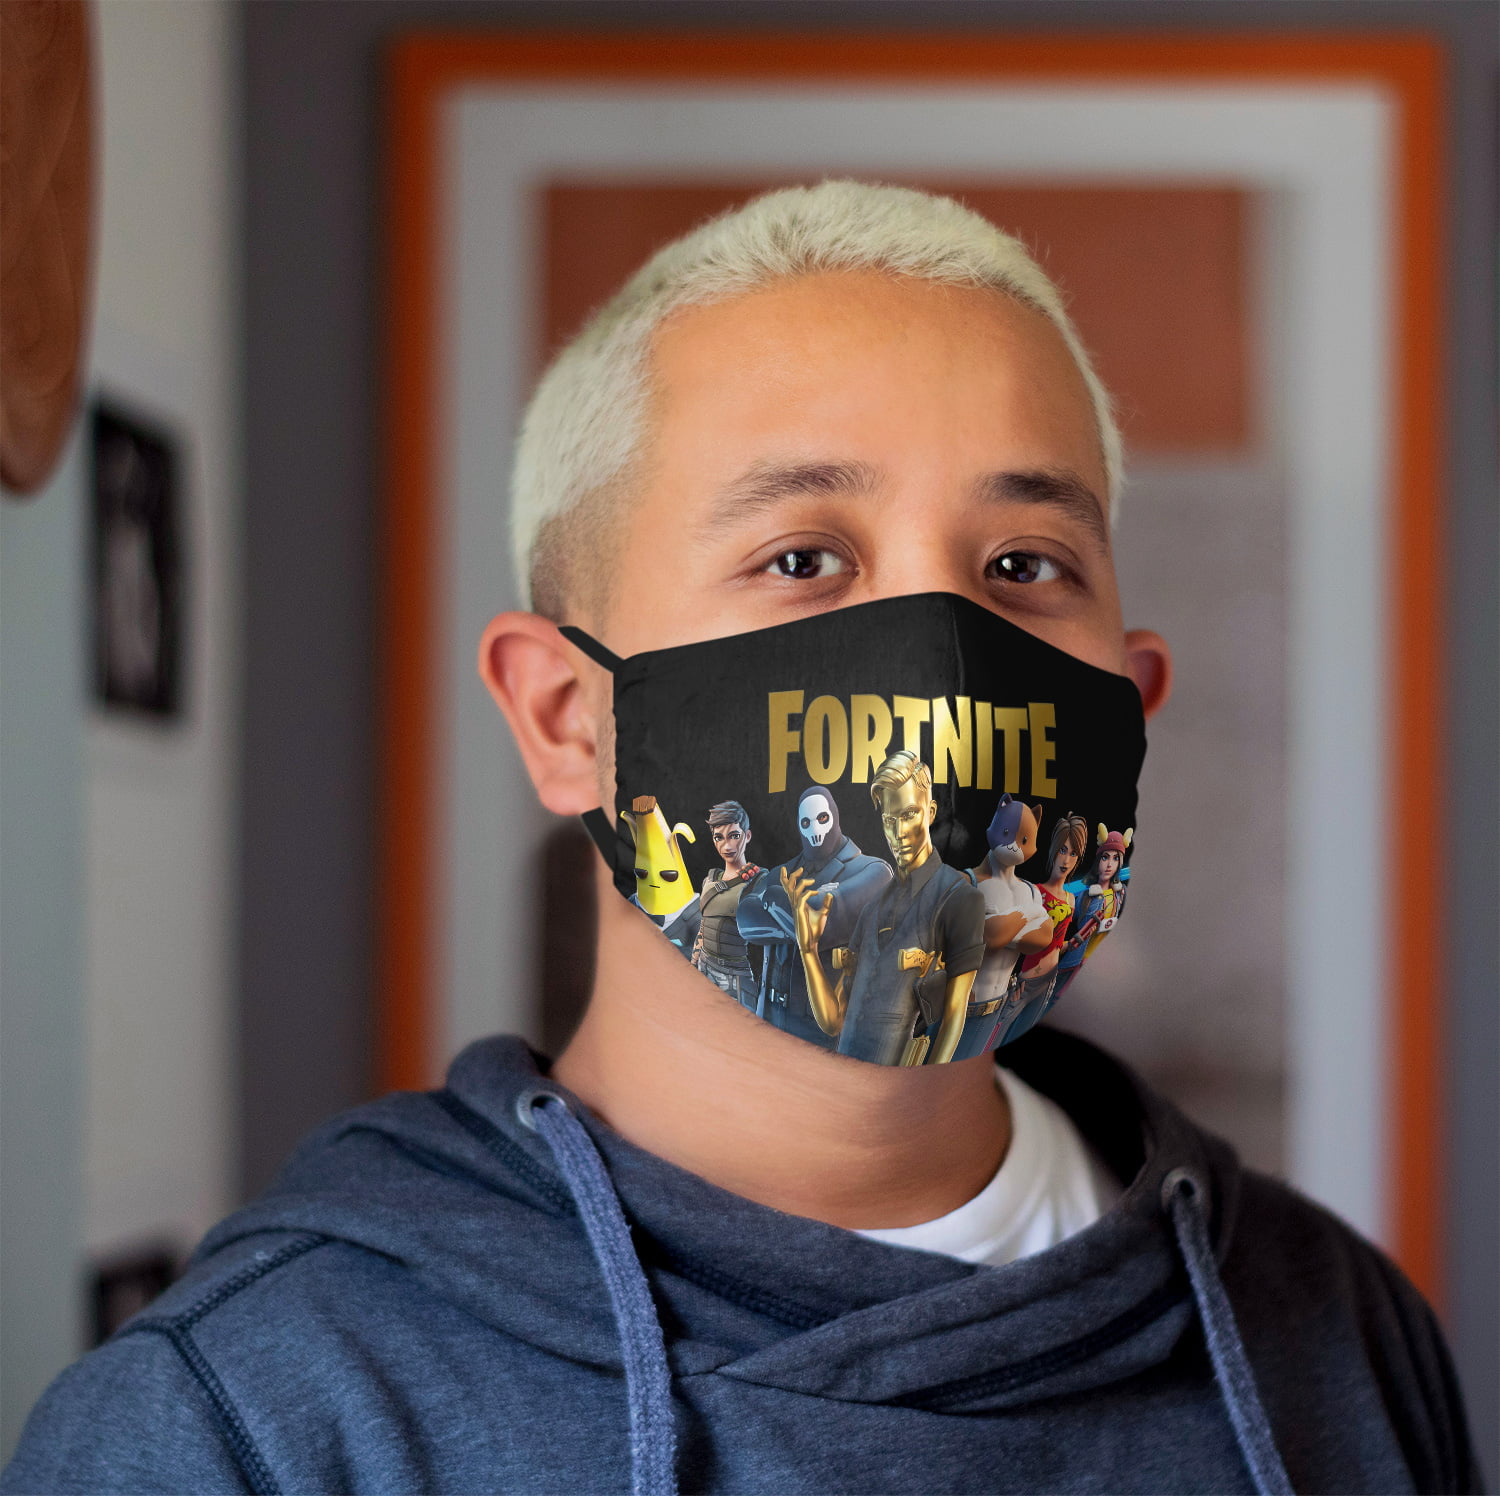 Fortnite Kids Face Mask + Filters PM2.5